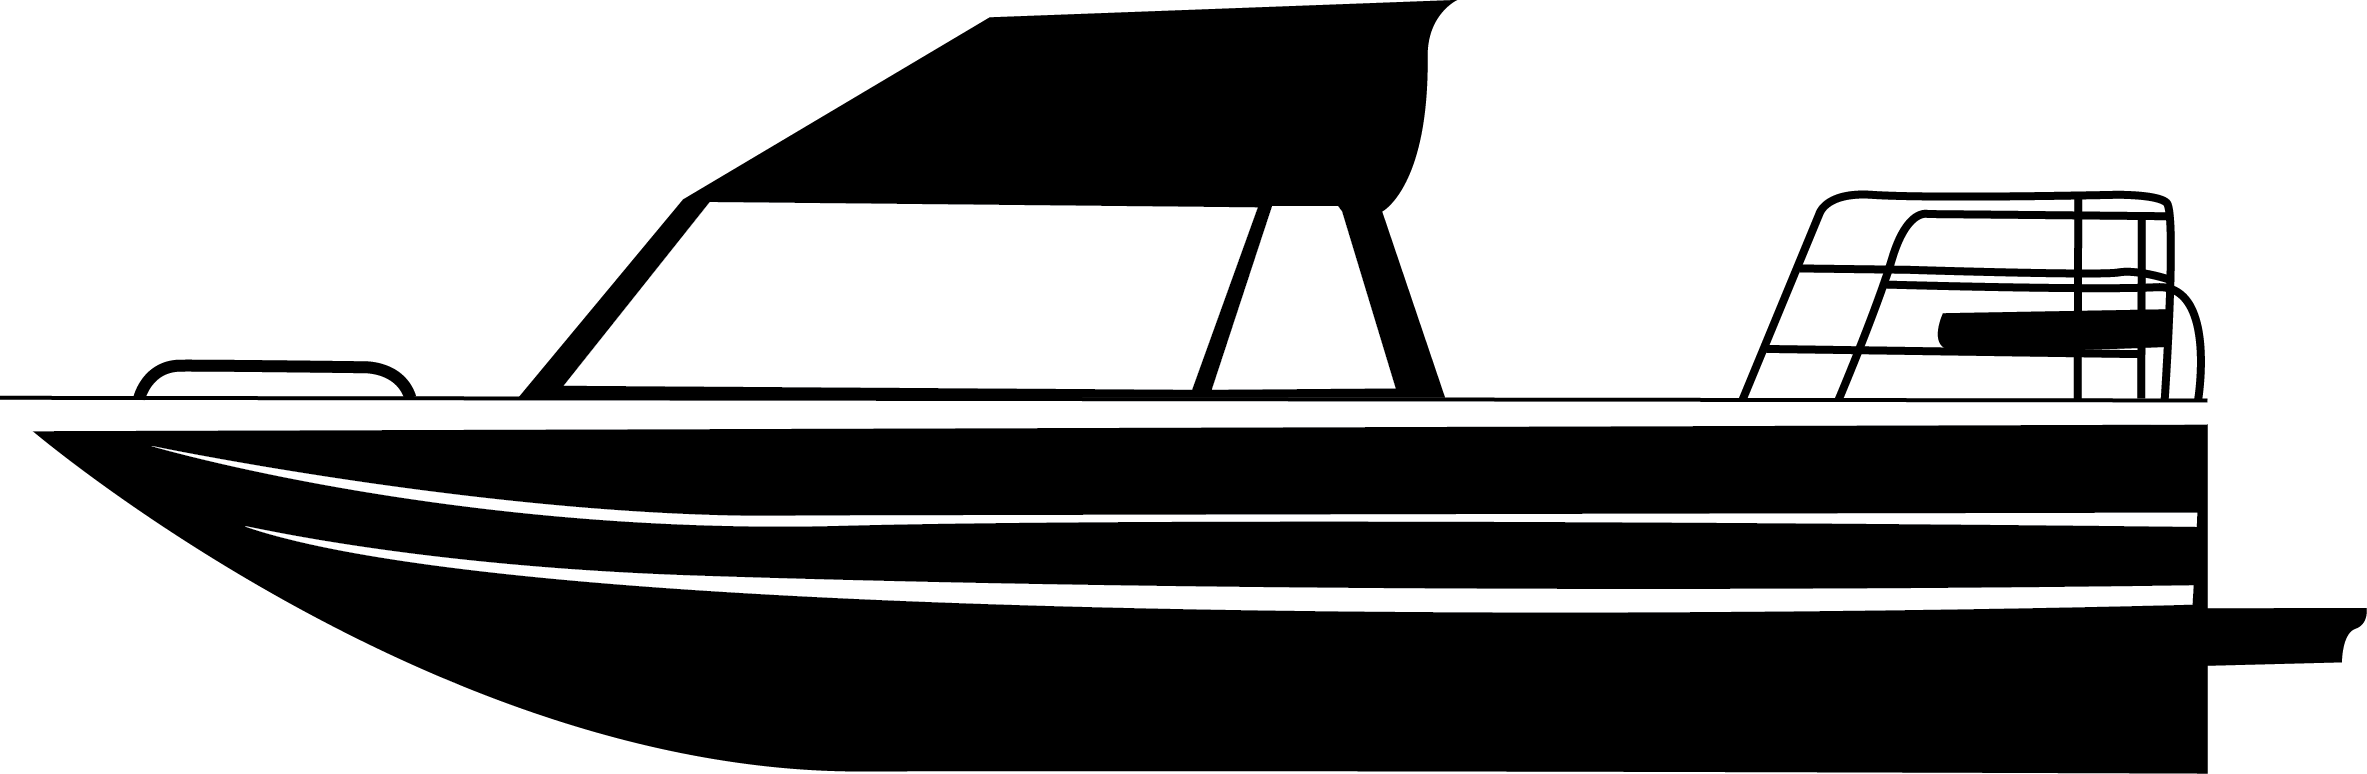 Clipart boat speed boat.  collection of jet